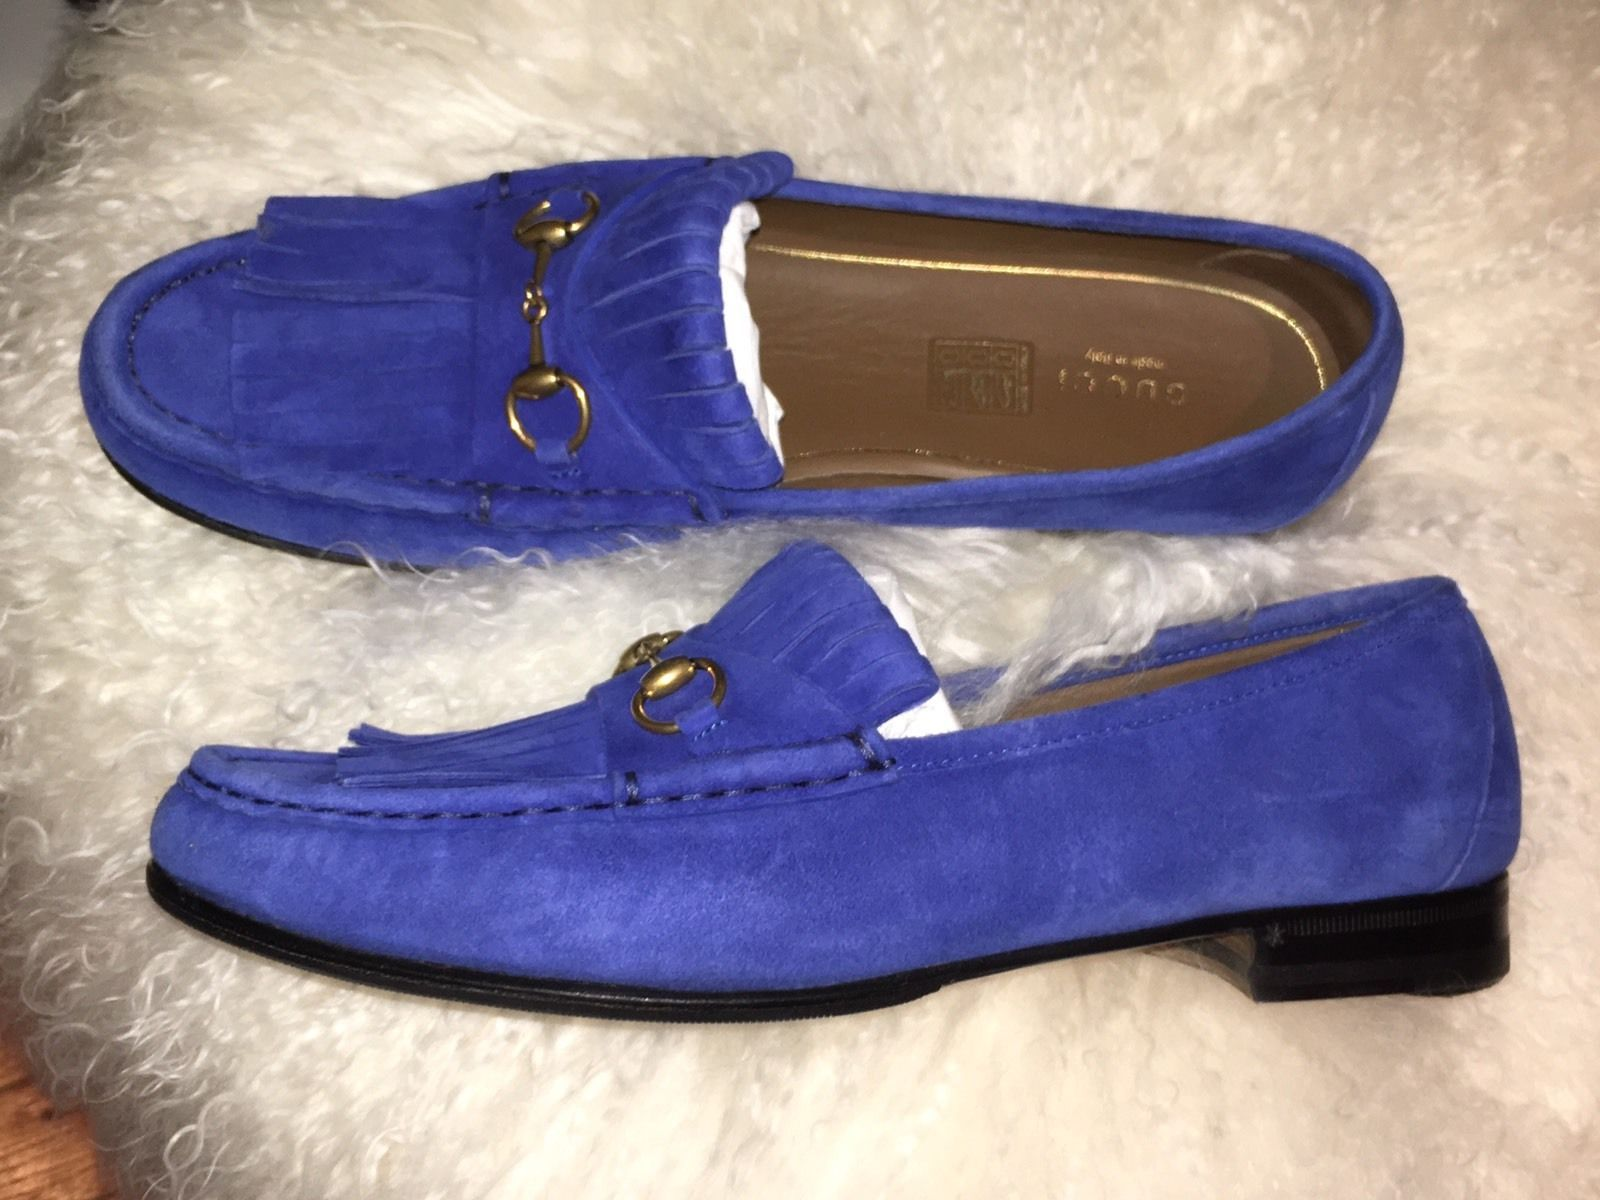 Pin on Pre-owned Gucci Slippers and Loafers